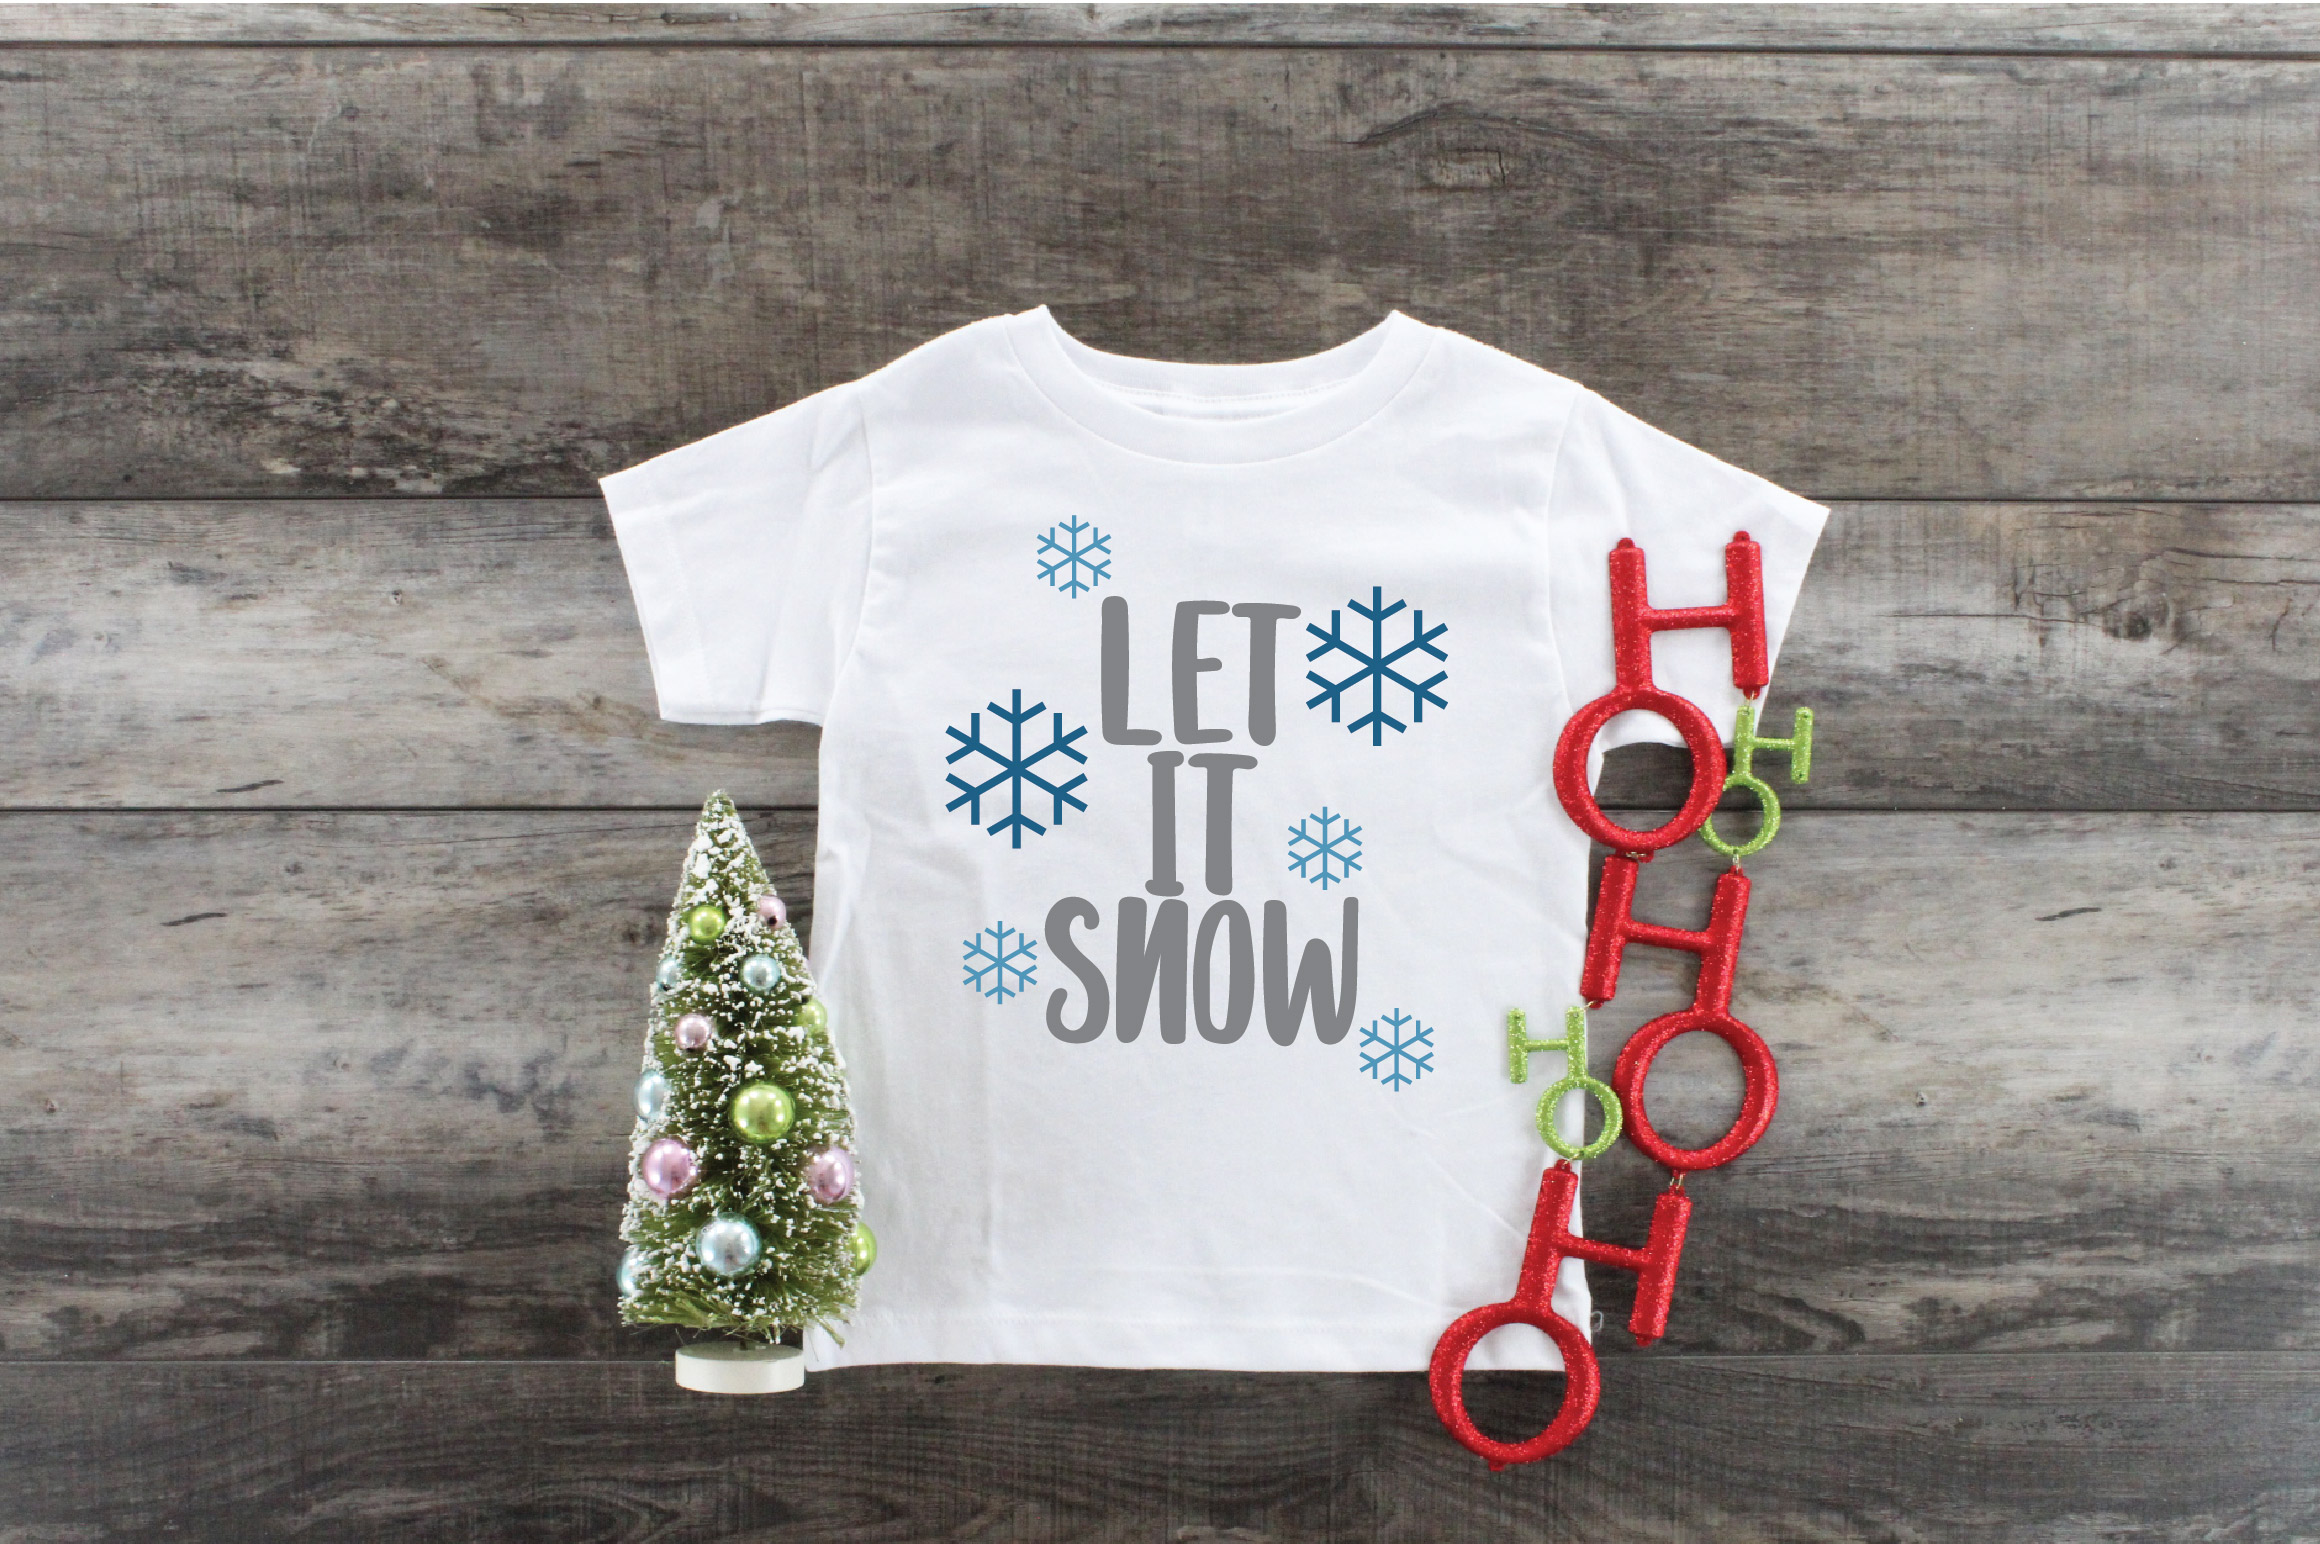 Let it Snow SVG Cut File - Christmas SVG example image 7